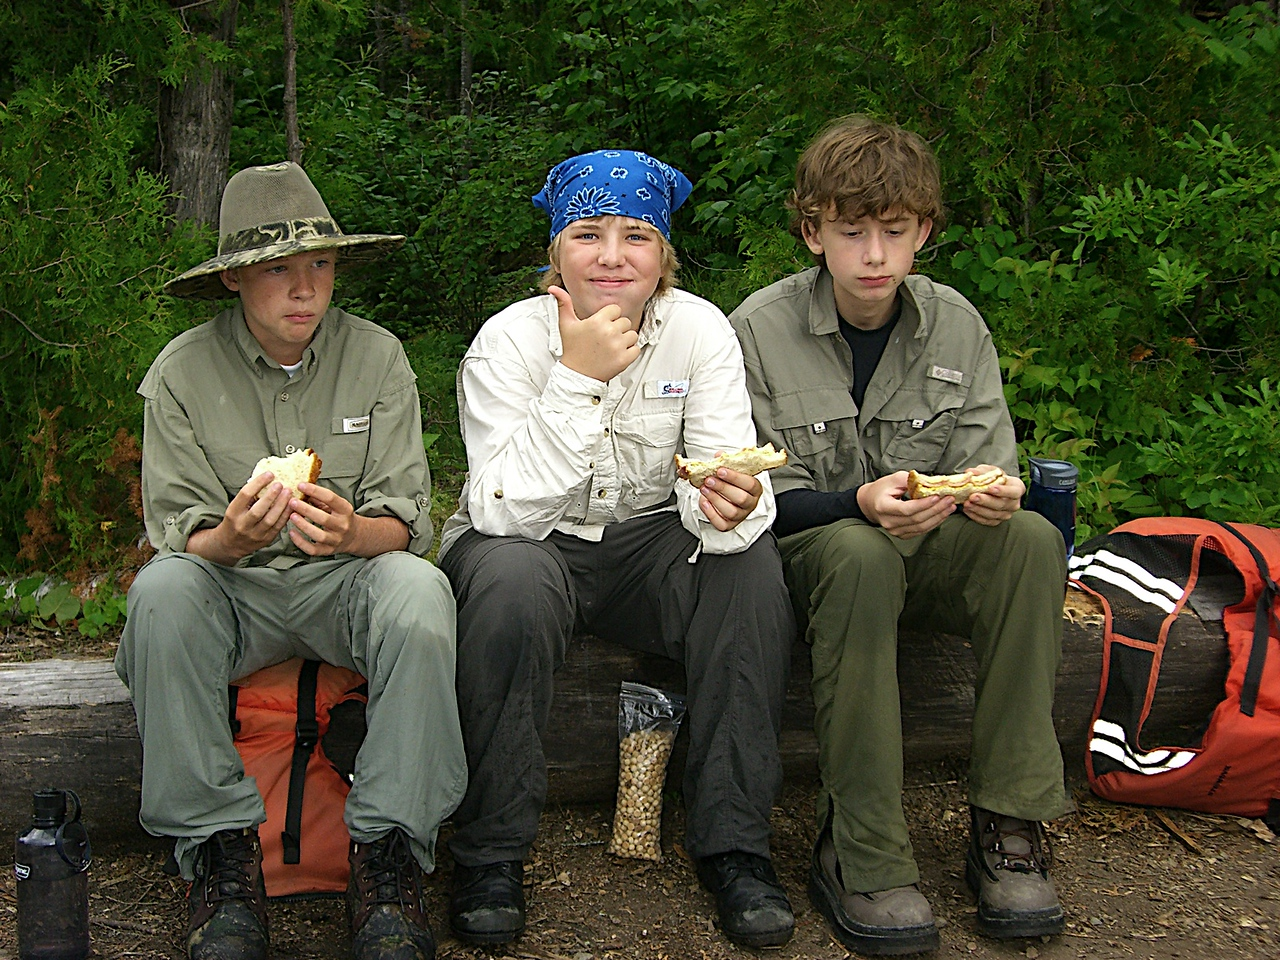 Trail lunches were awesome!  I love those mini chocolate chip cookies!  One bag per canoe!